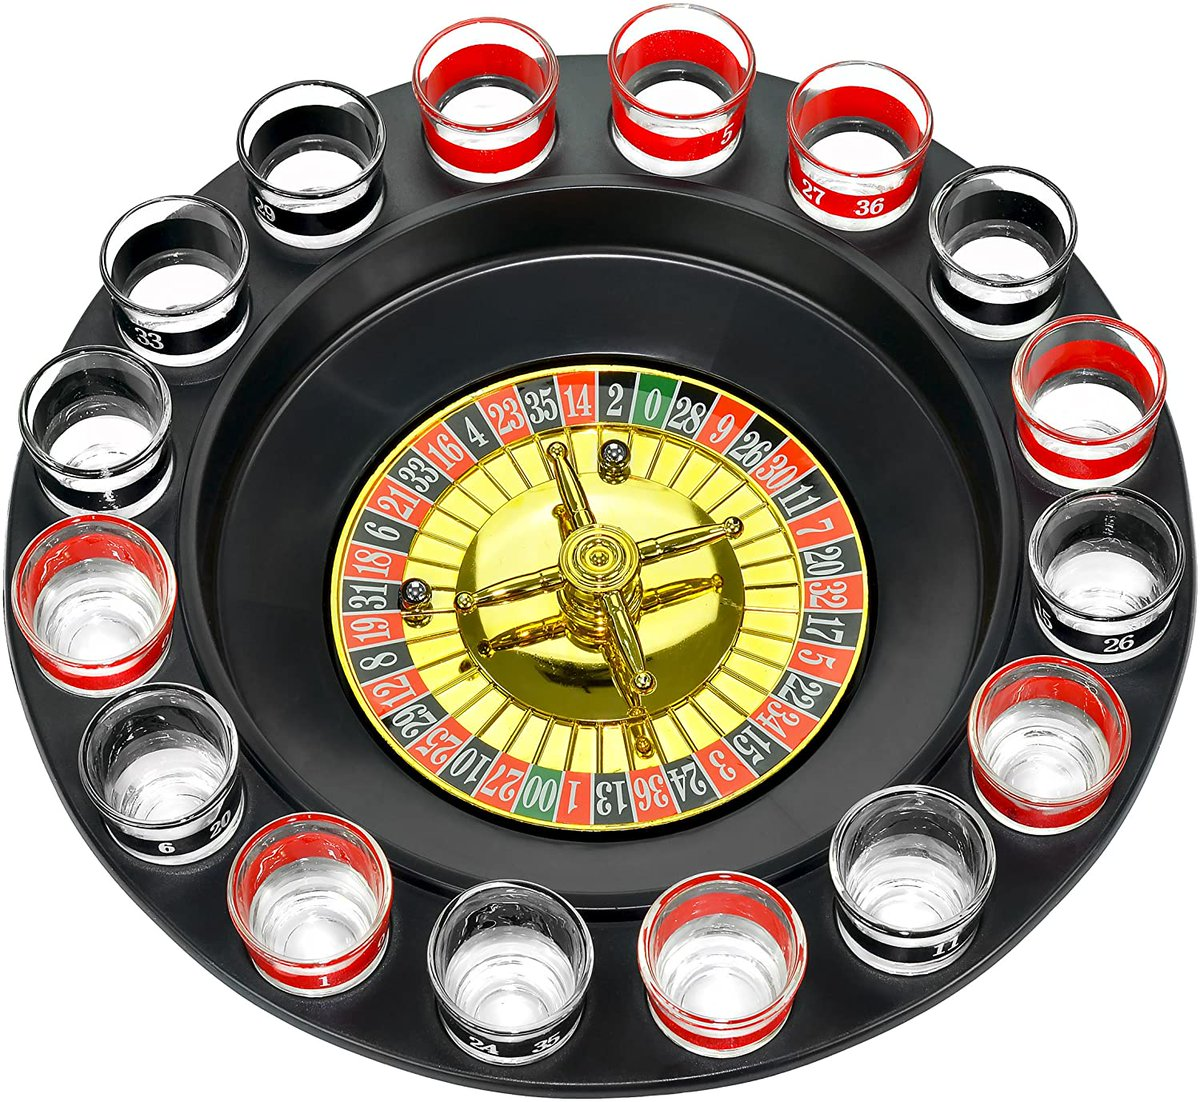 🥃 -Shot Glass Roulette Complete Set drinking game, 16PCS, Red/Black $19.99  *Drink Responsibly*    #giftideas #deals #Amazon #AmazonPrime #GiftIdeas2020